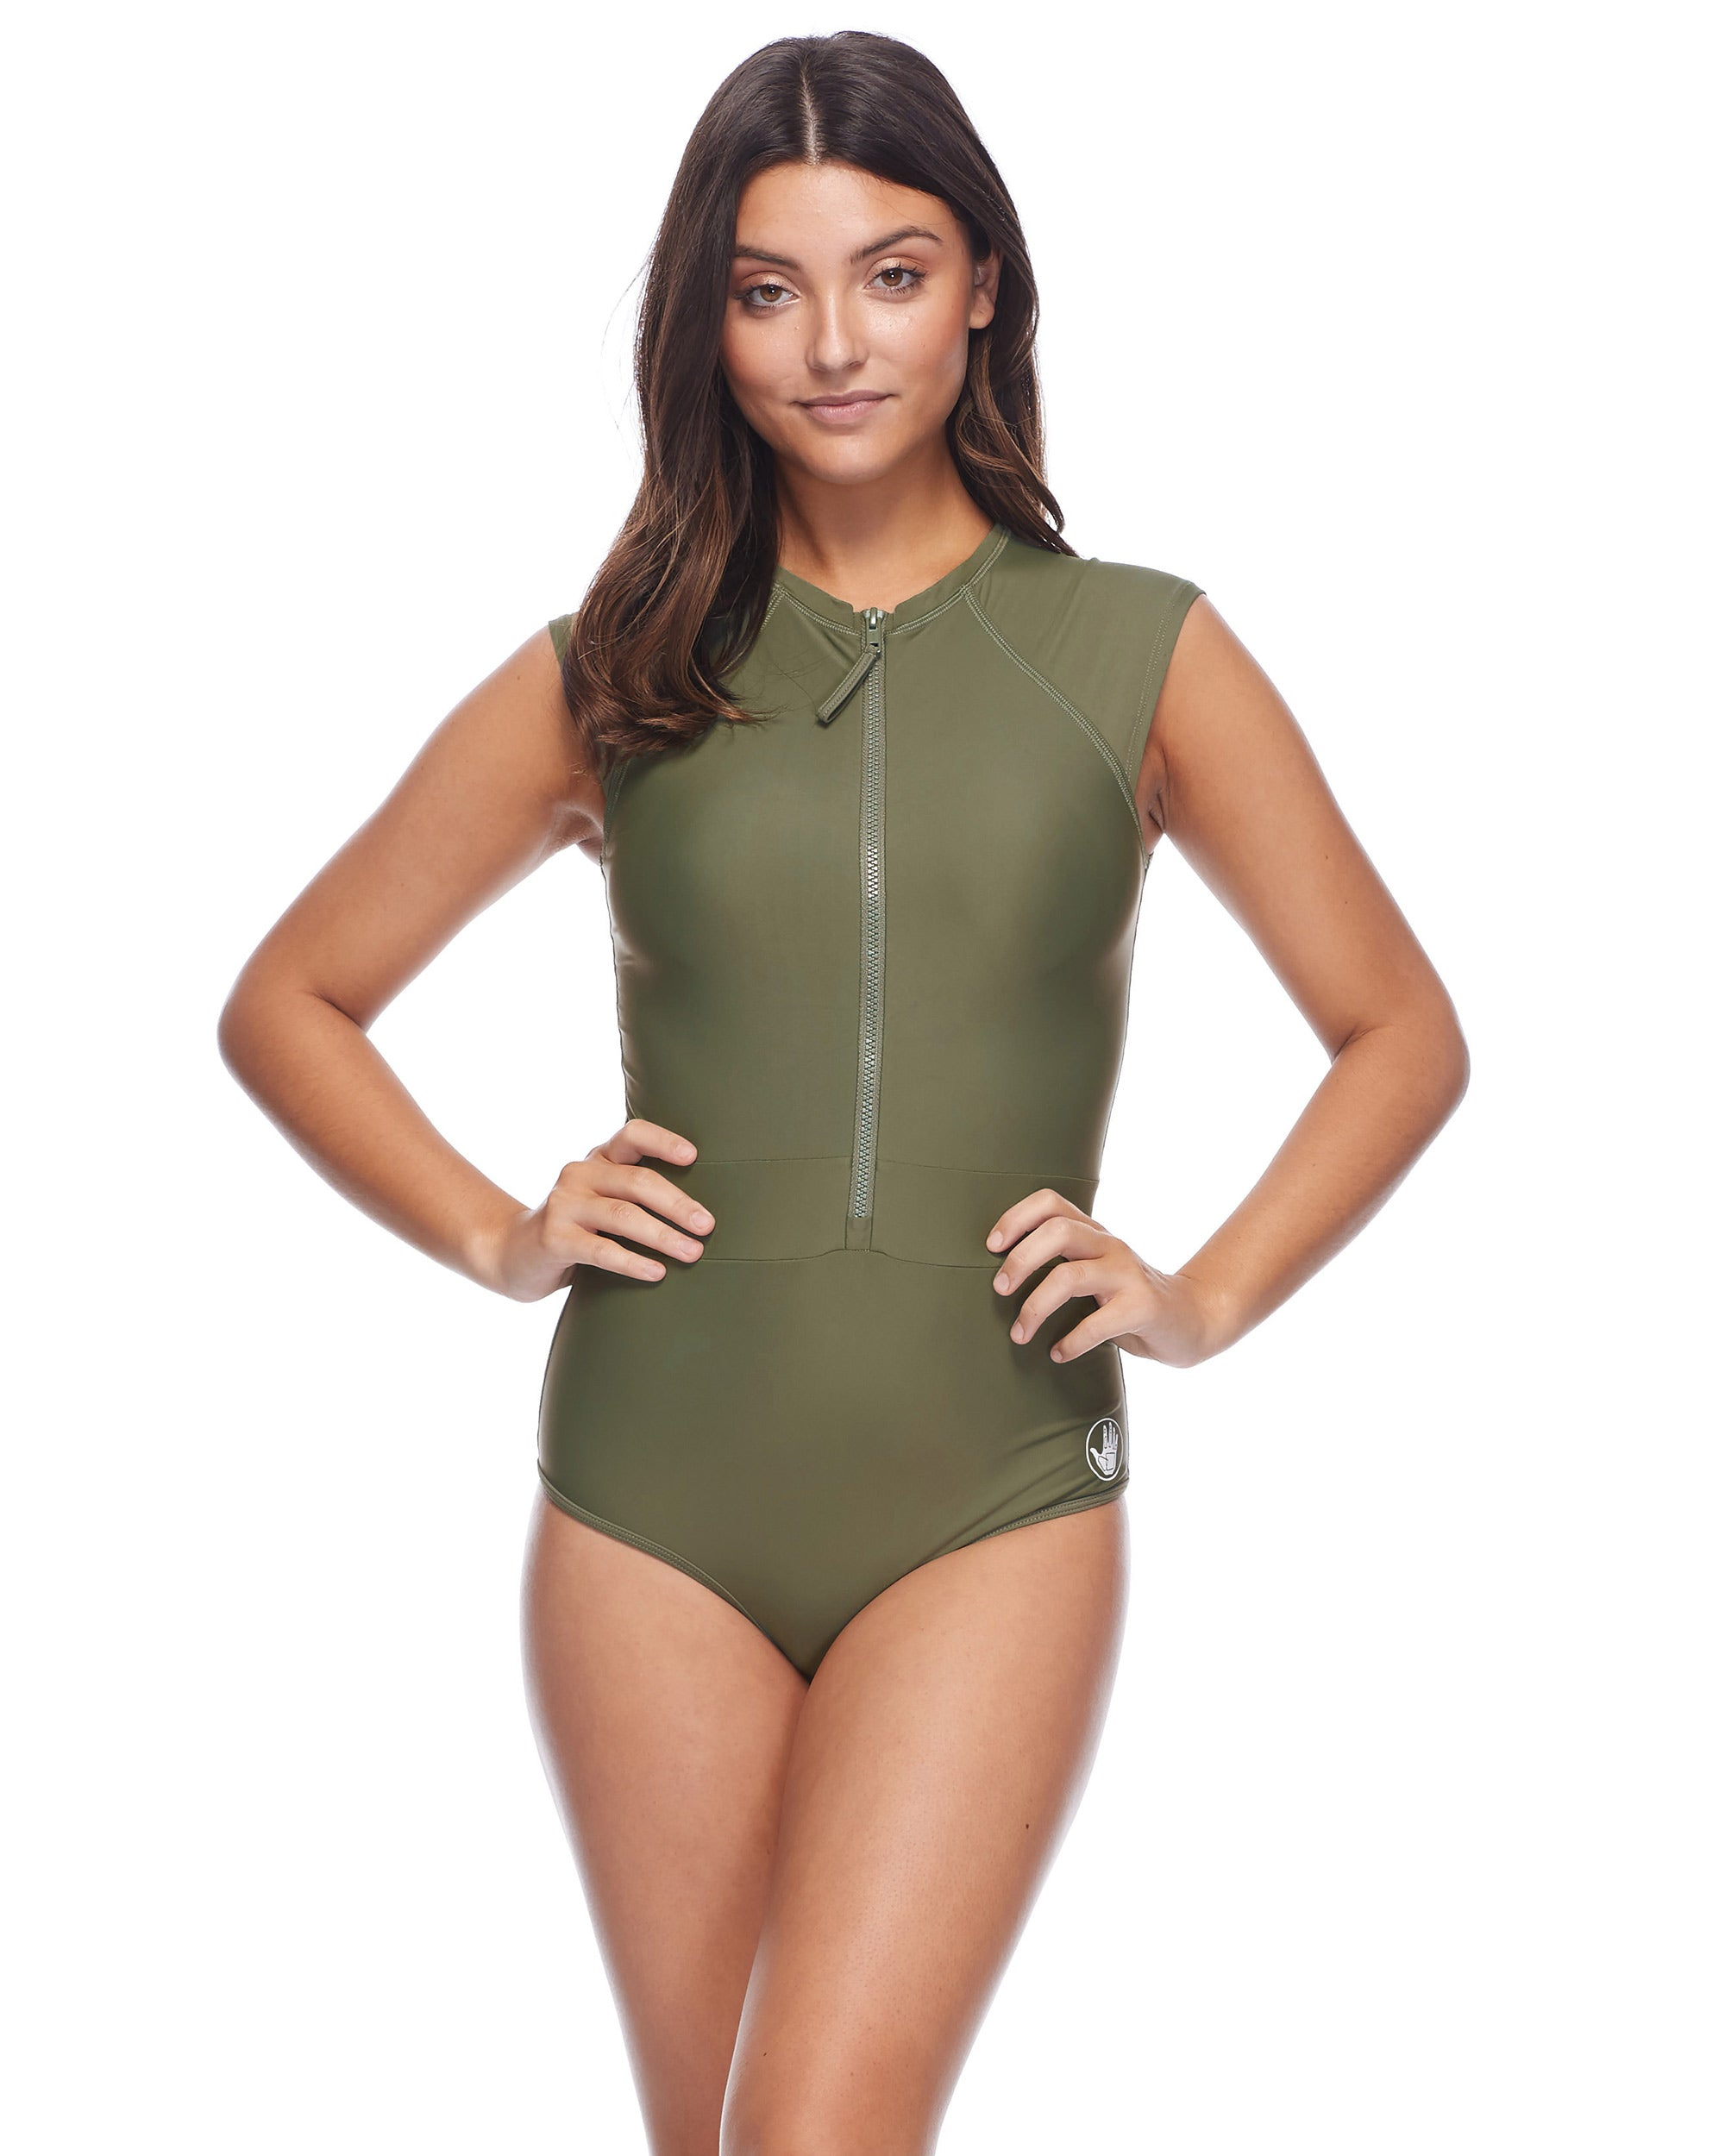 Smoothies Stand Up Paddle Suit - Cactus